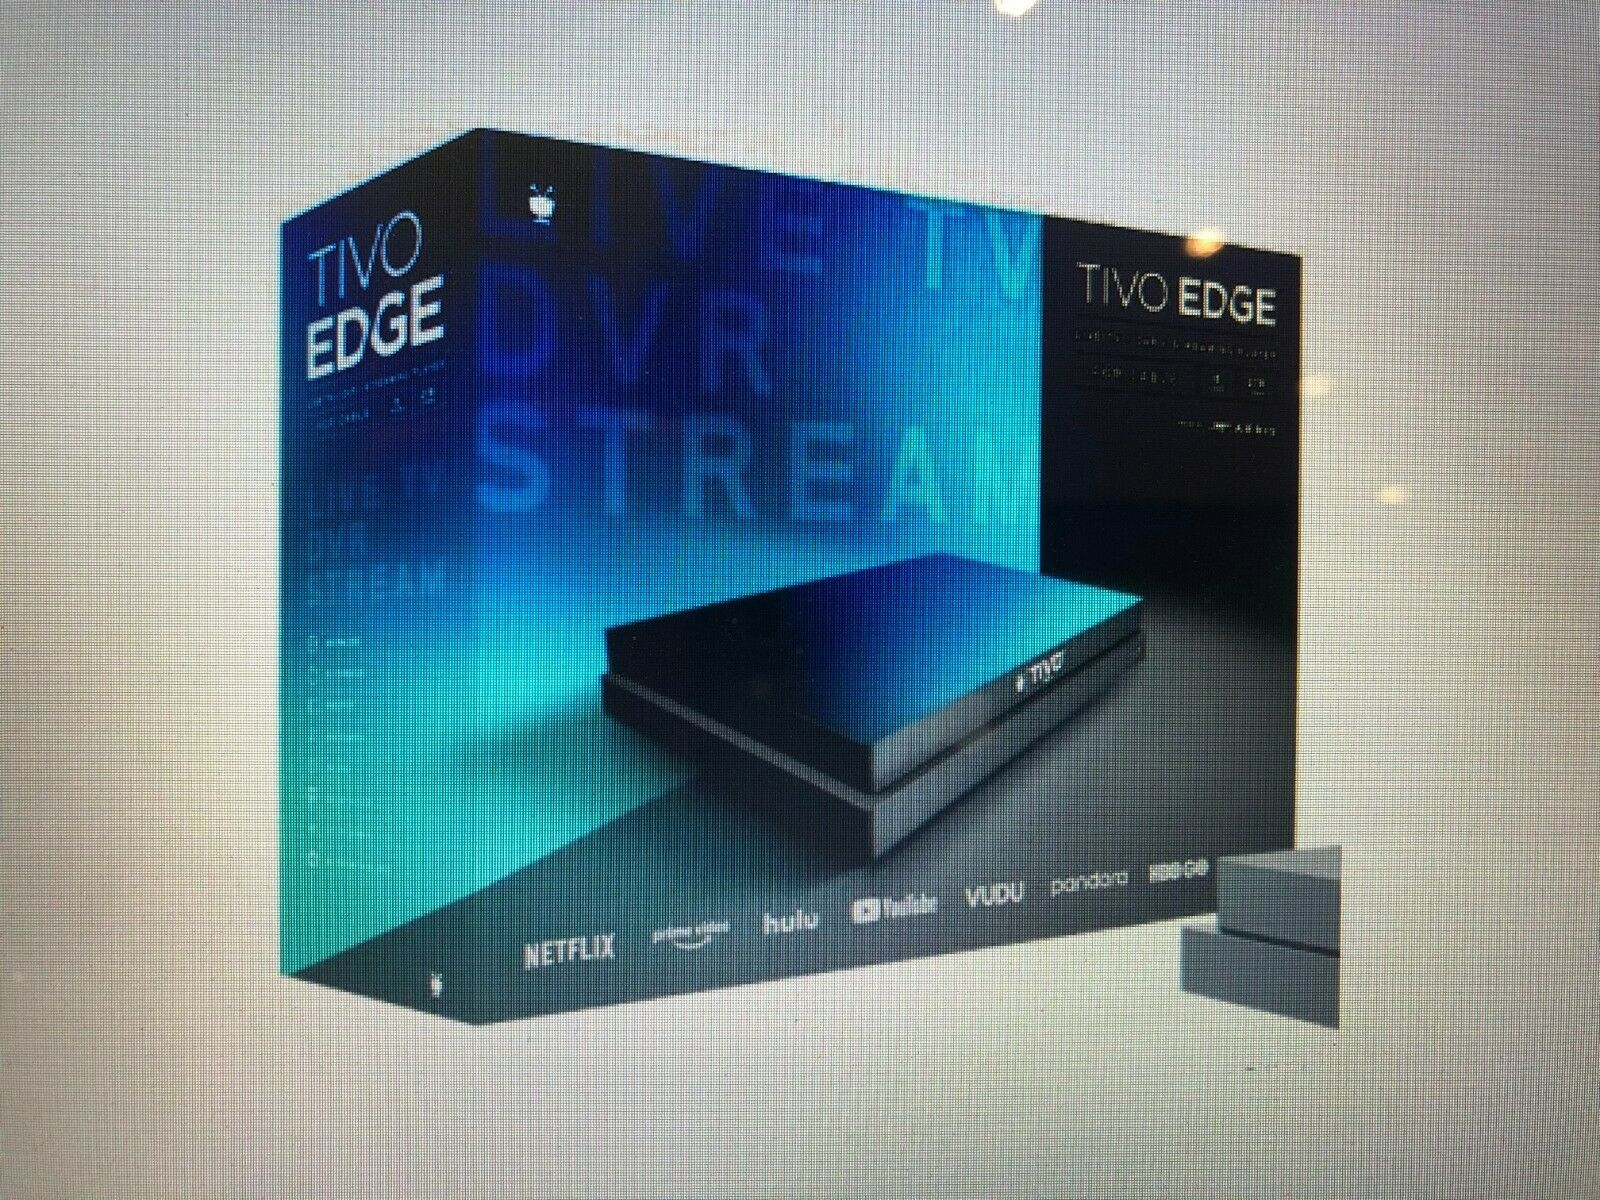 TiVO EDGE for CABLE Live TV / DVR Streaming Player, 4 Tuners, 2TB - BRAND NEW 2tb brand cable dvr edge for live new streaming tivo